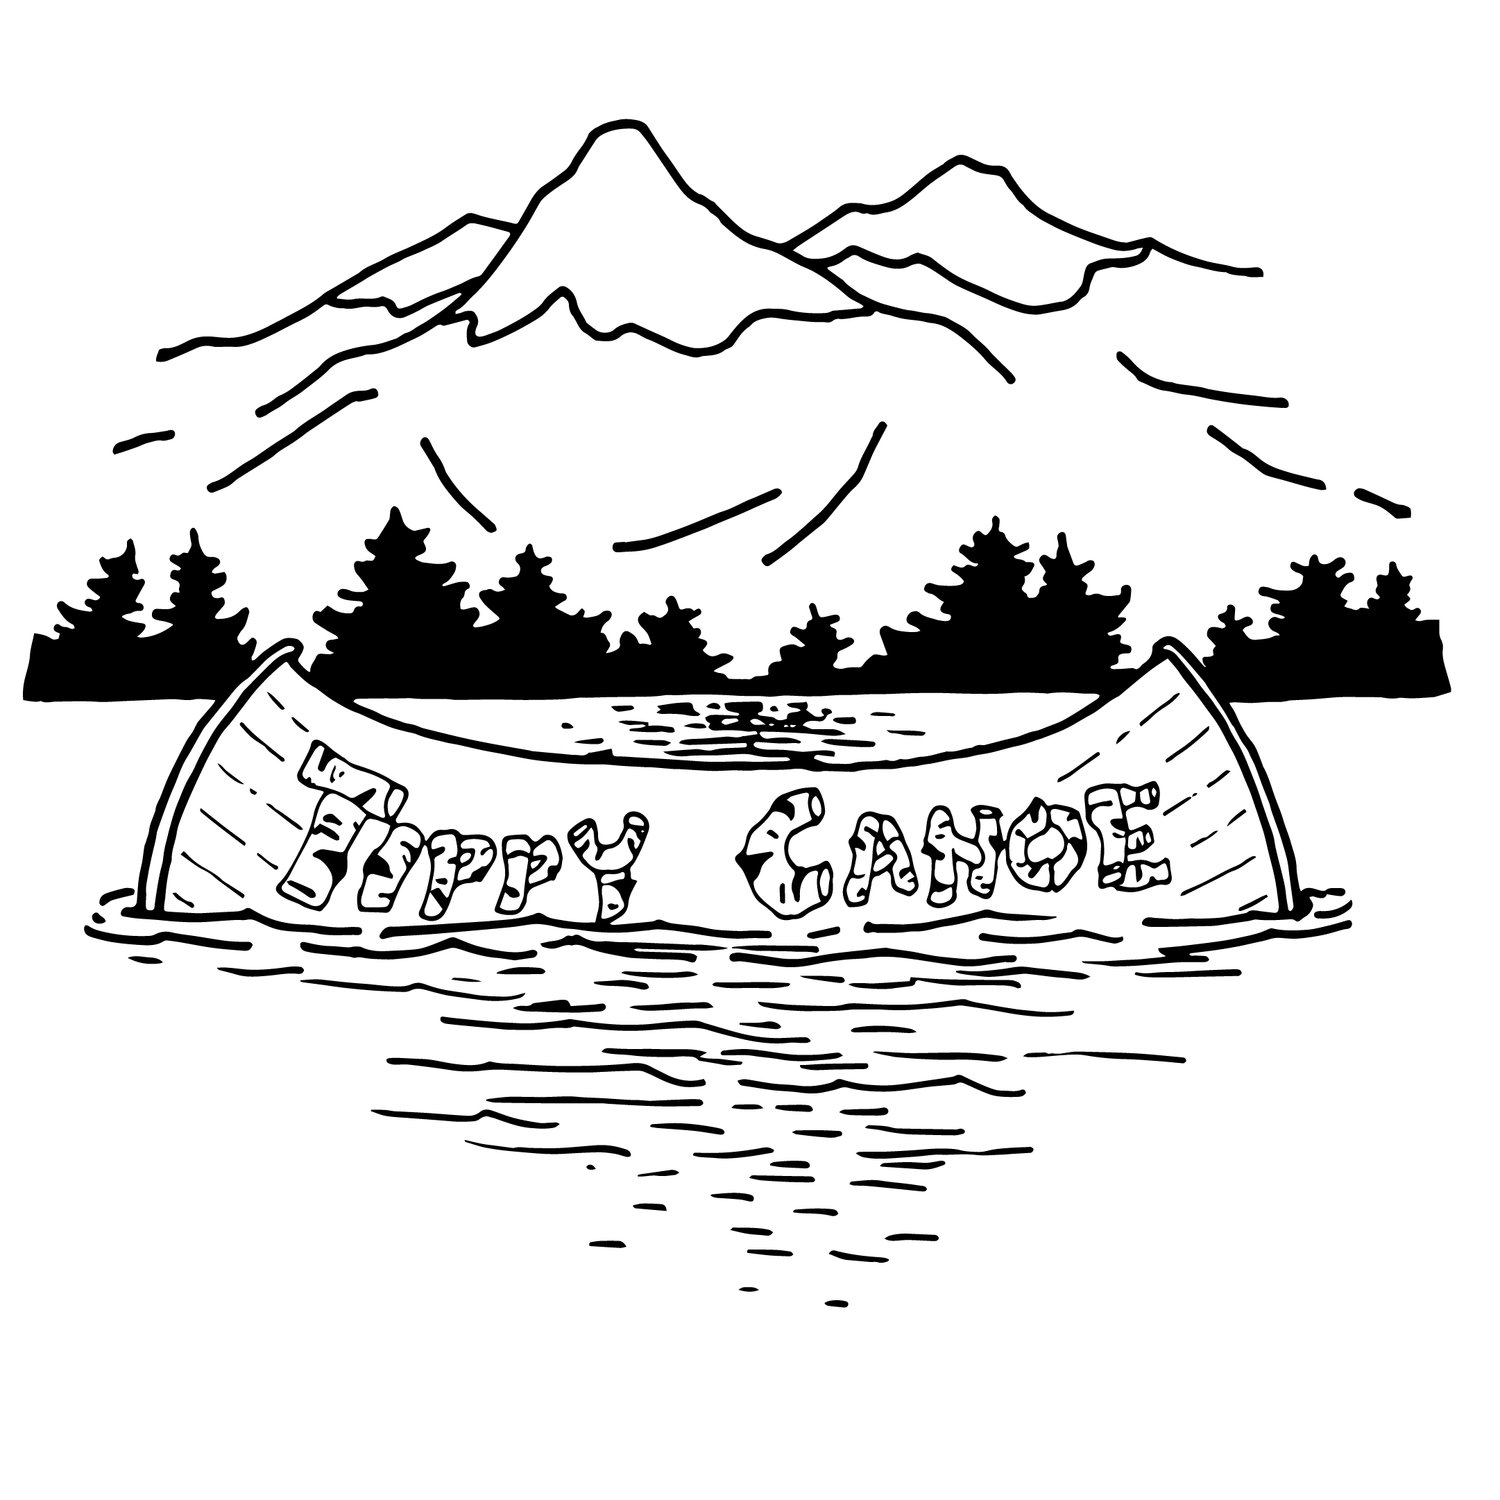 Tippy Canoe Productions